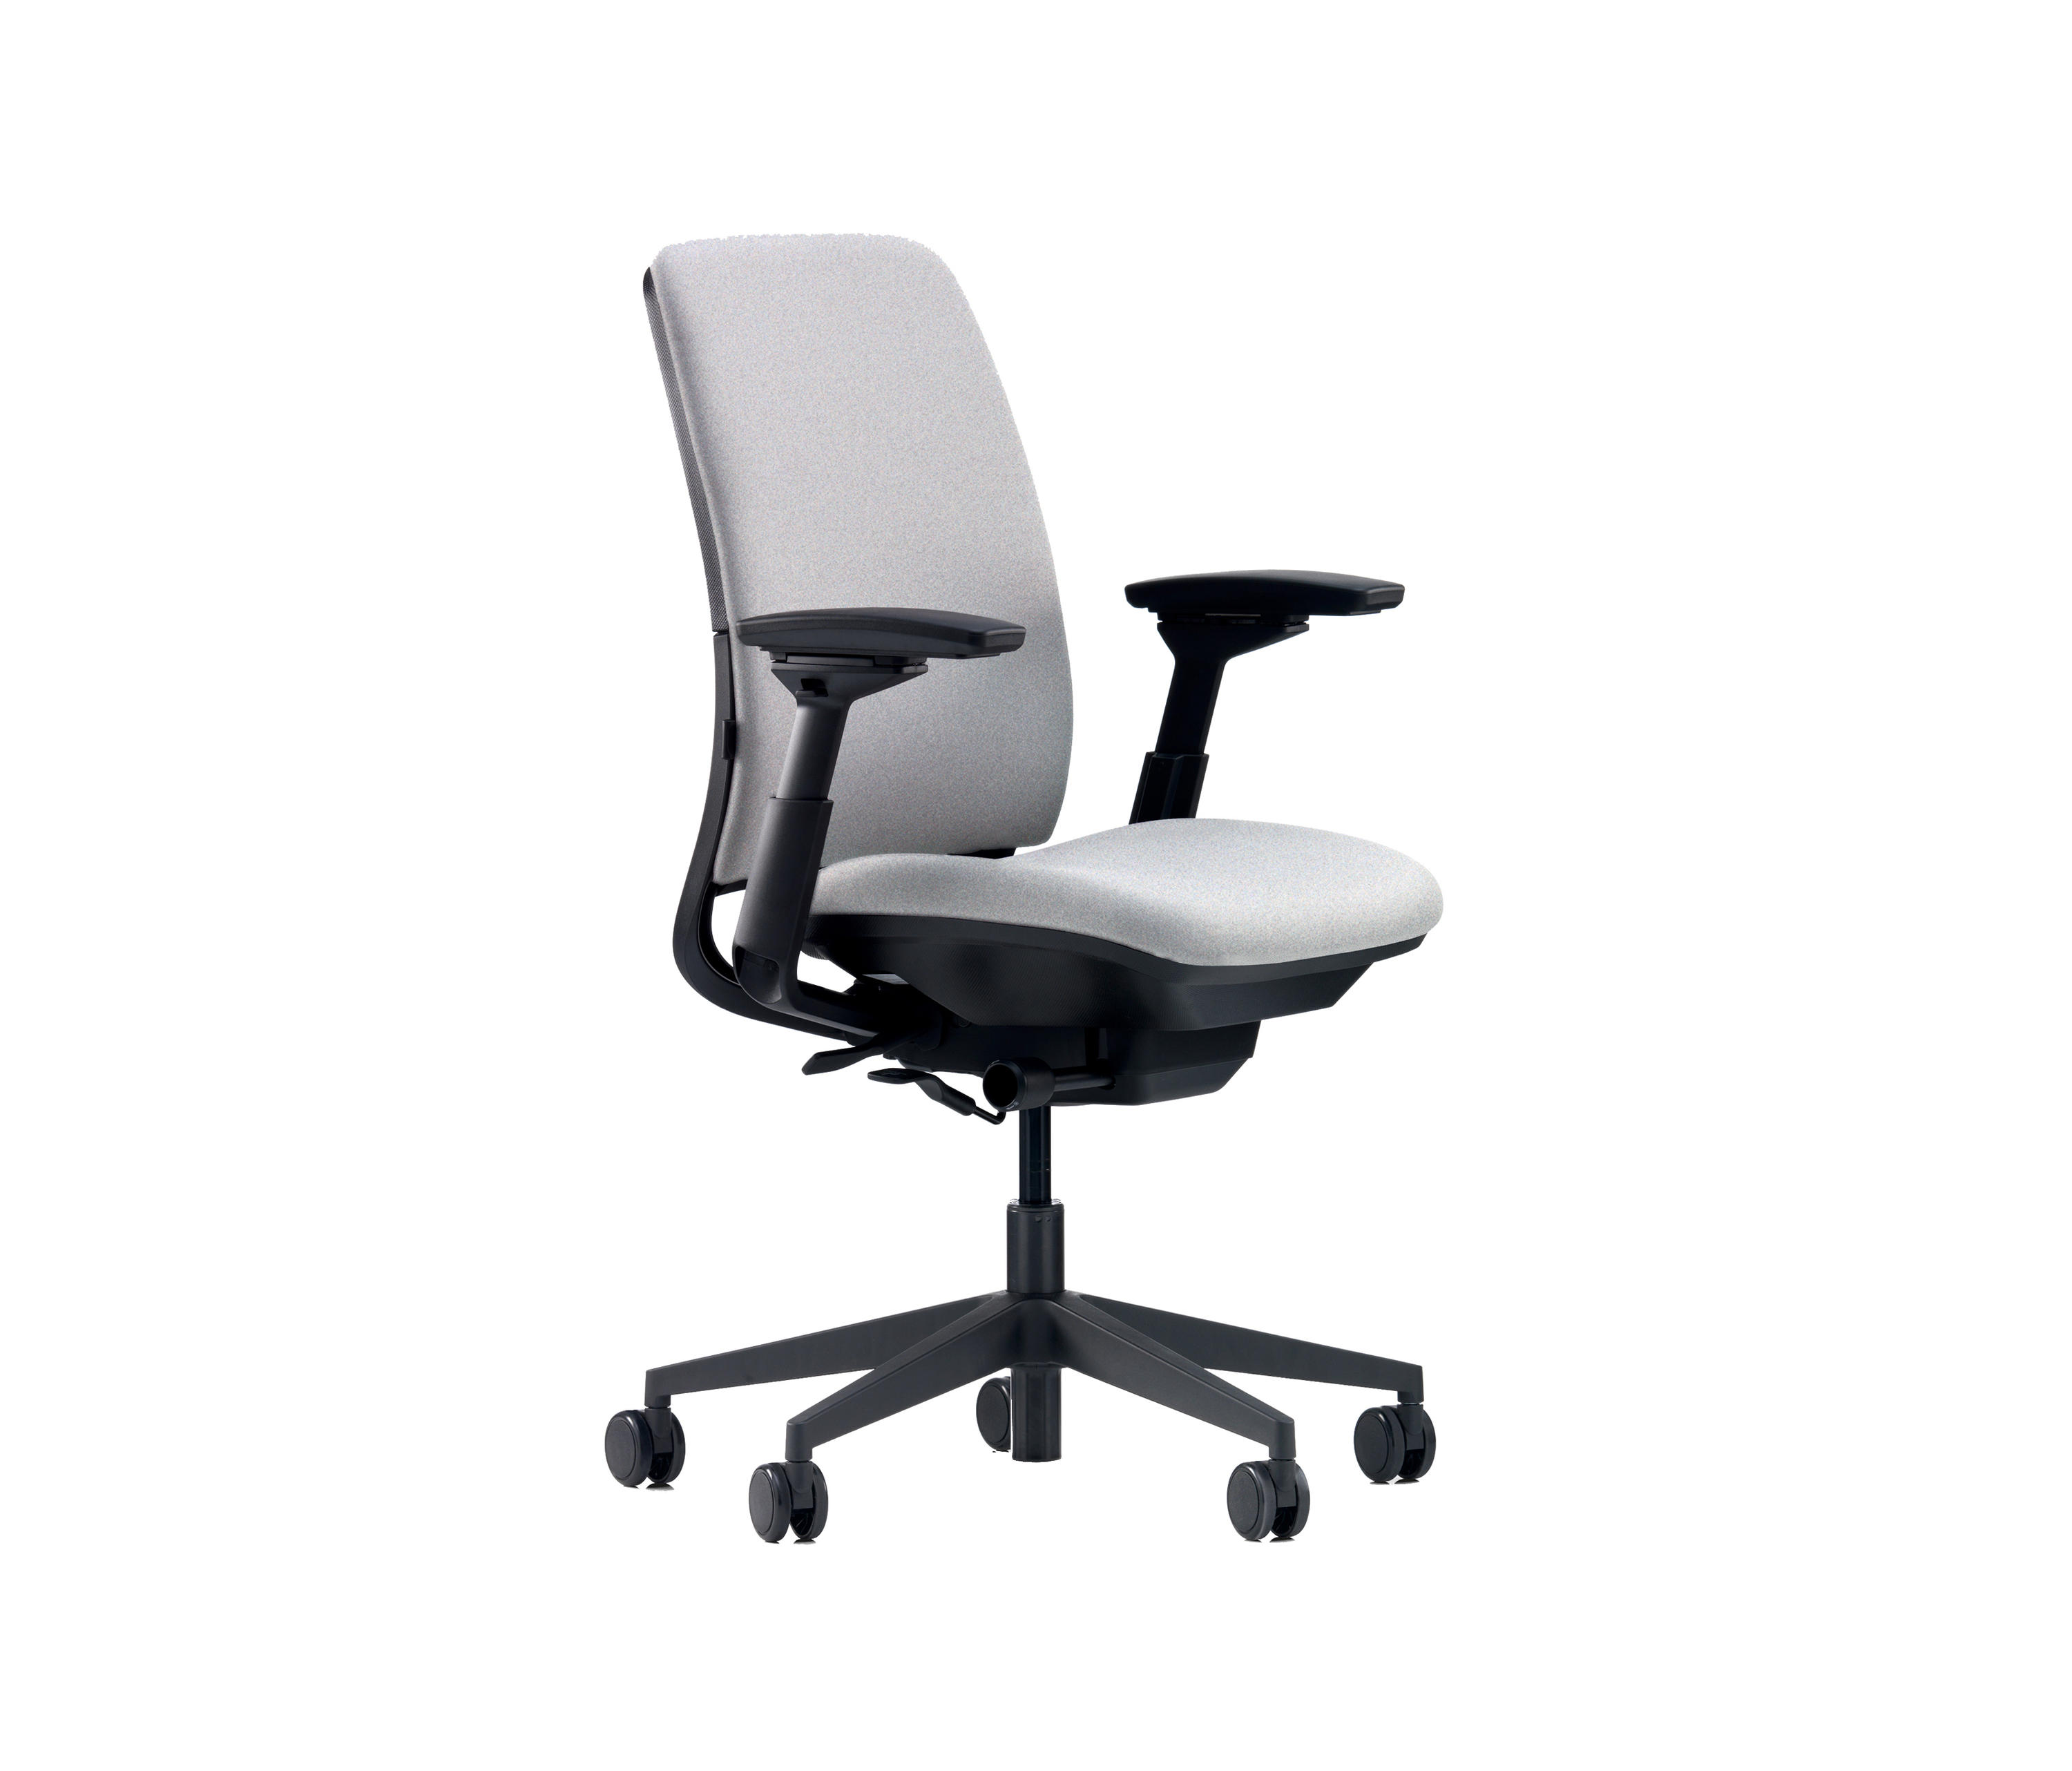 Merveilleux Amia By Steelcase | Office Chairs ...